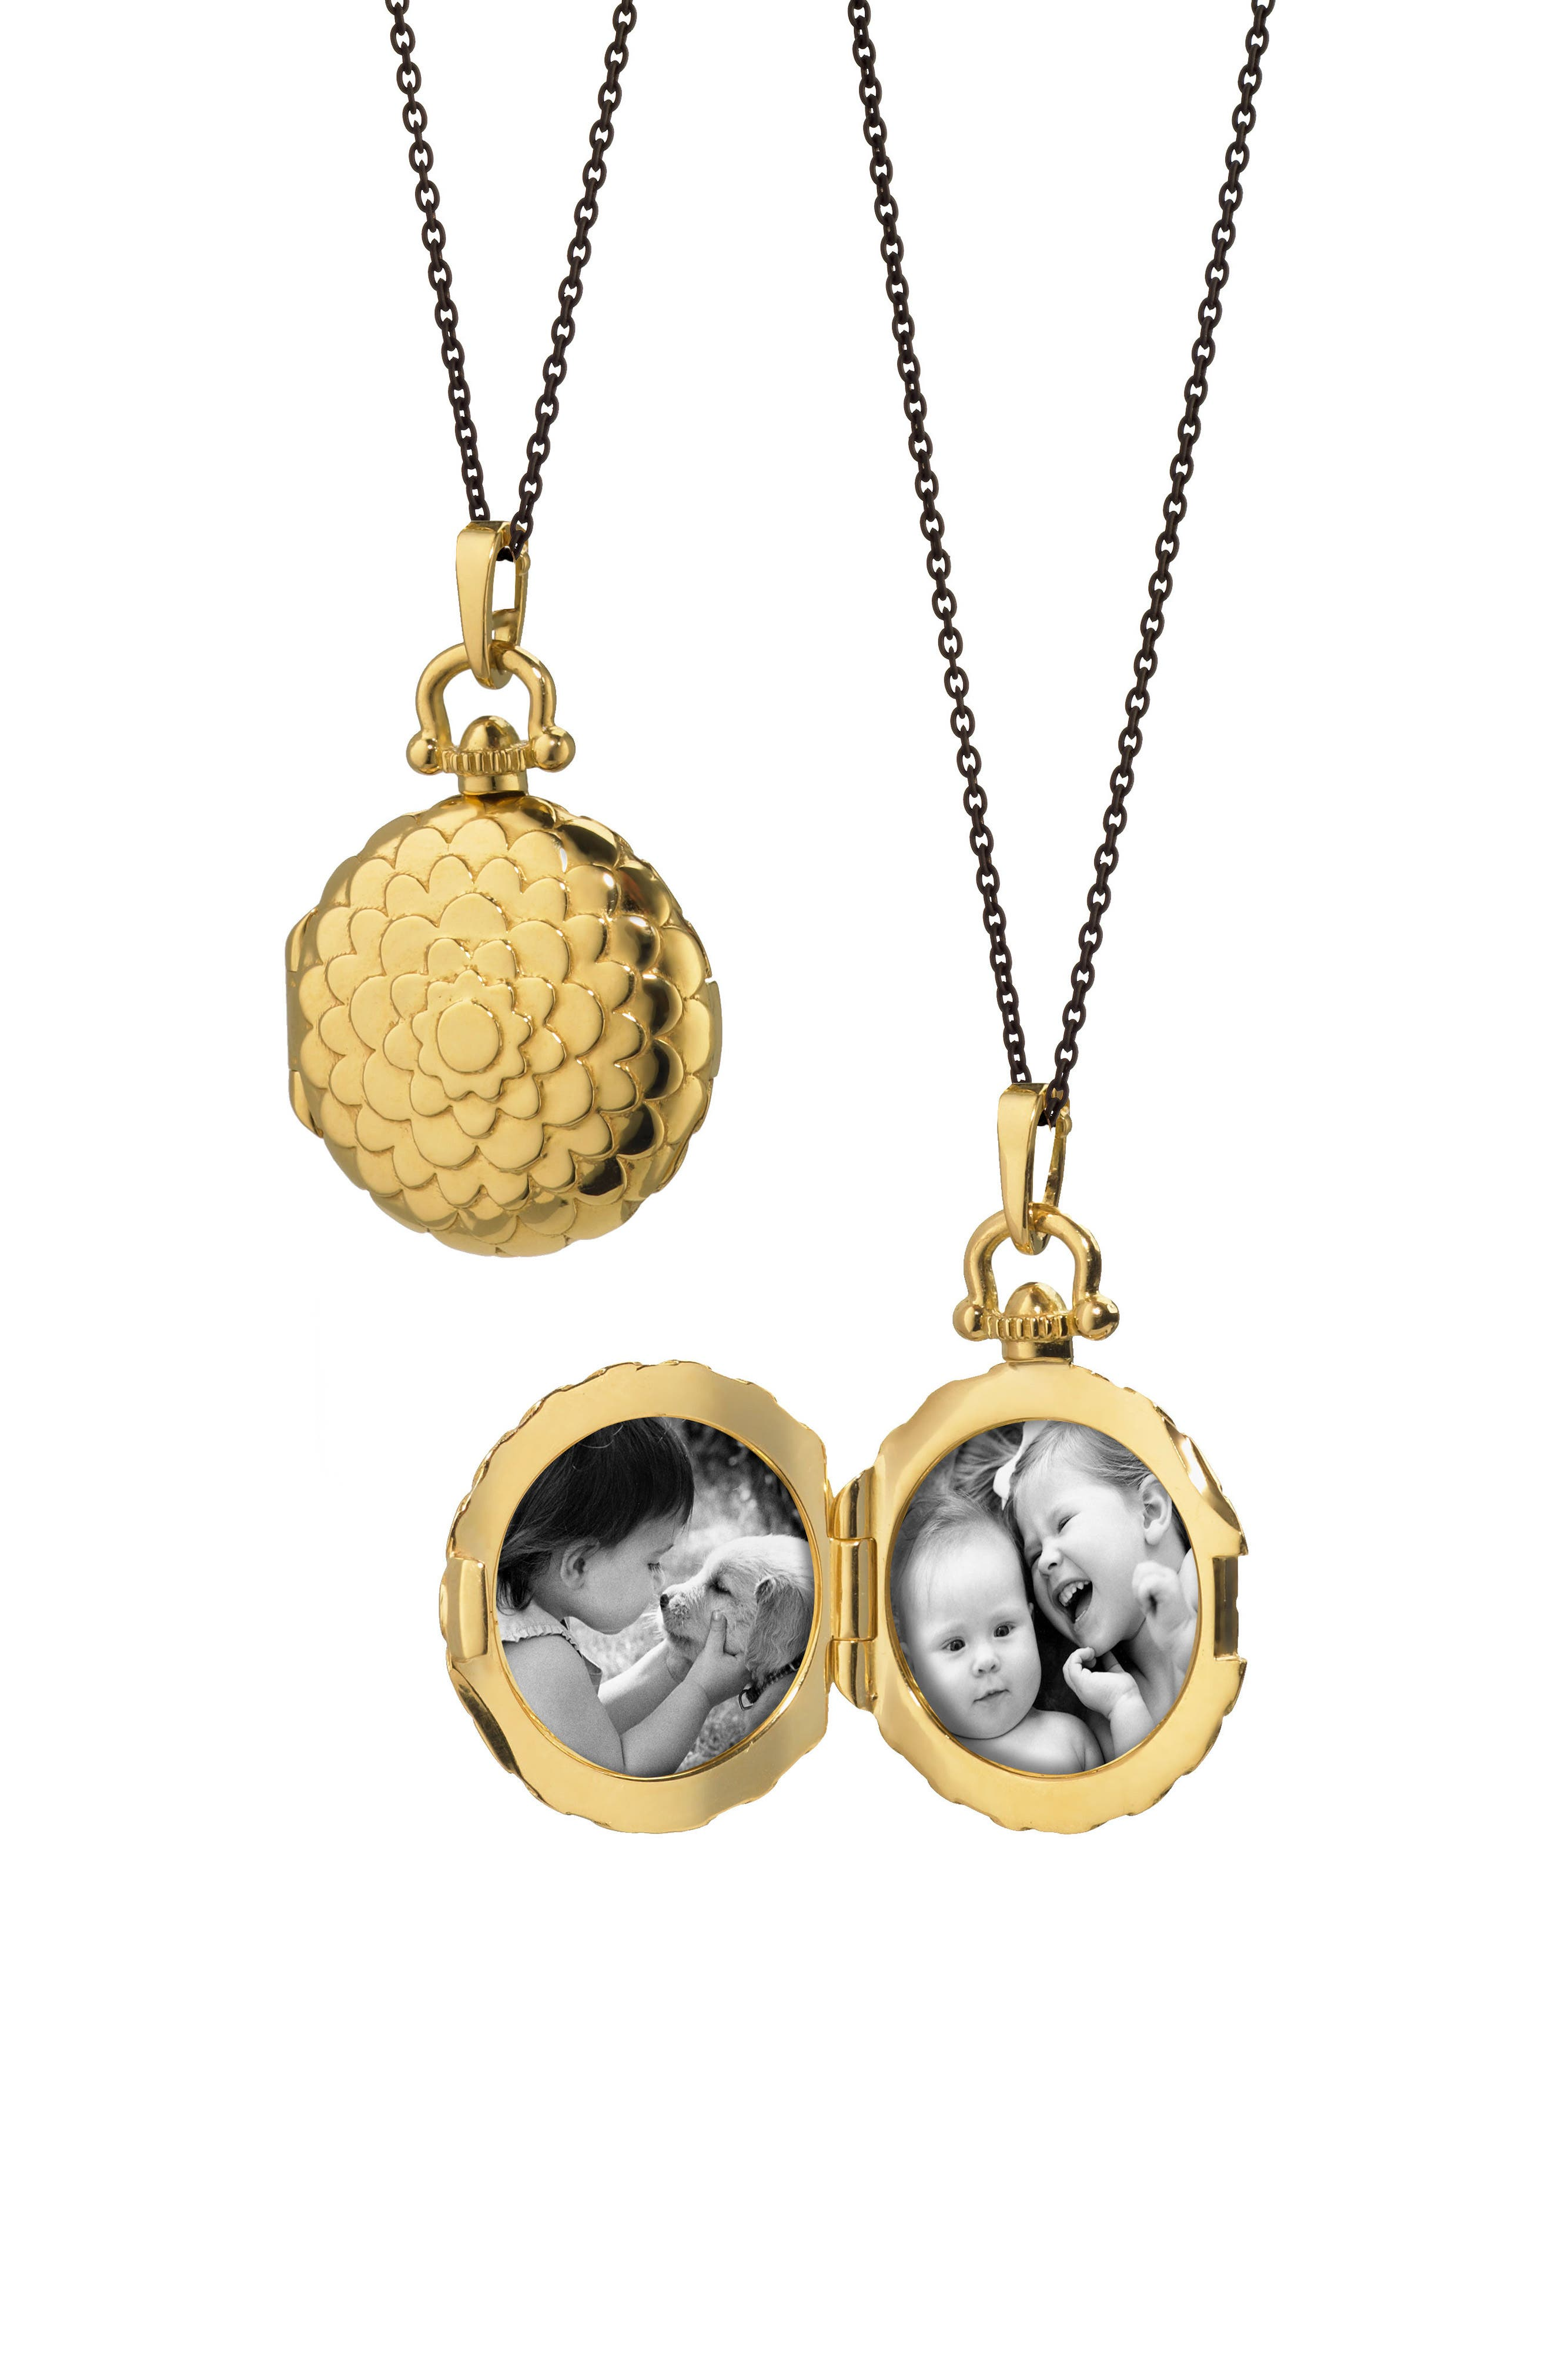 Scalloped Locket Necklace,                             Main thumbnail 1, color,                             18K YELLOW GOLD/ BLACK STEEL